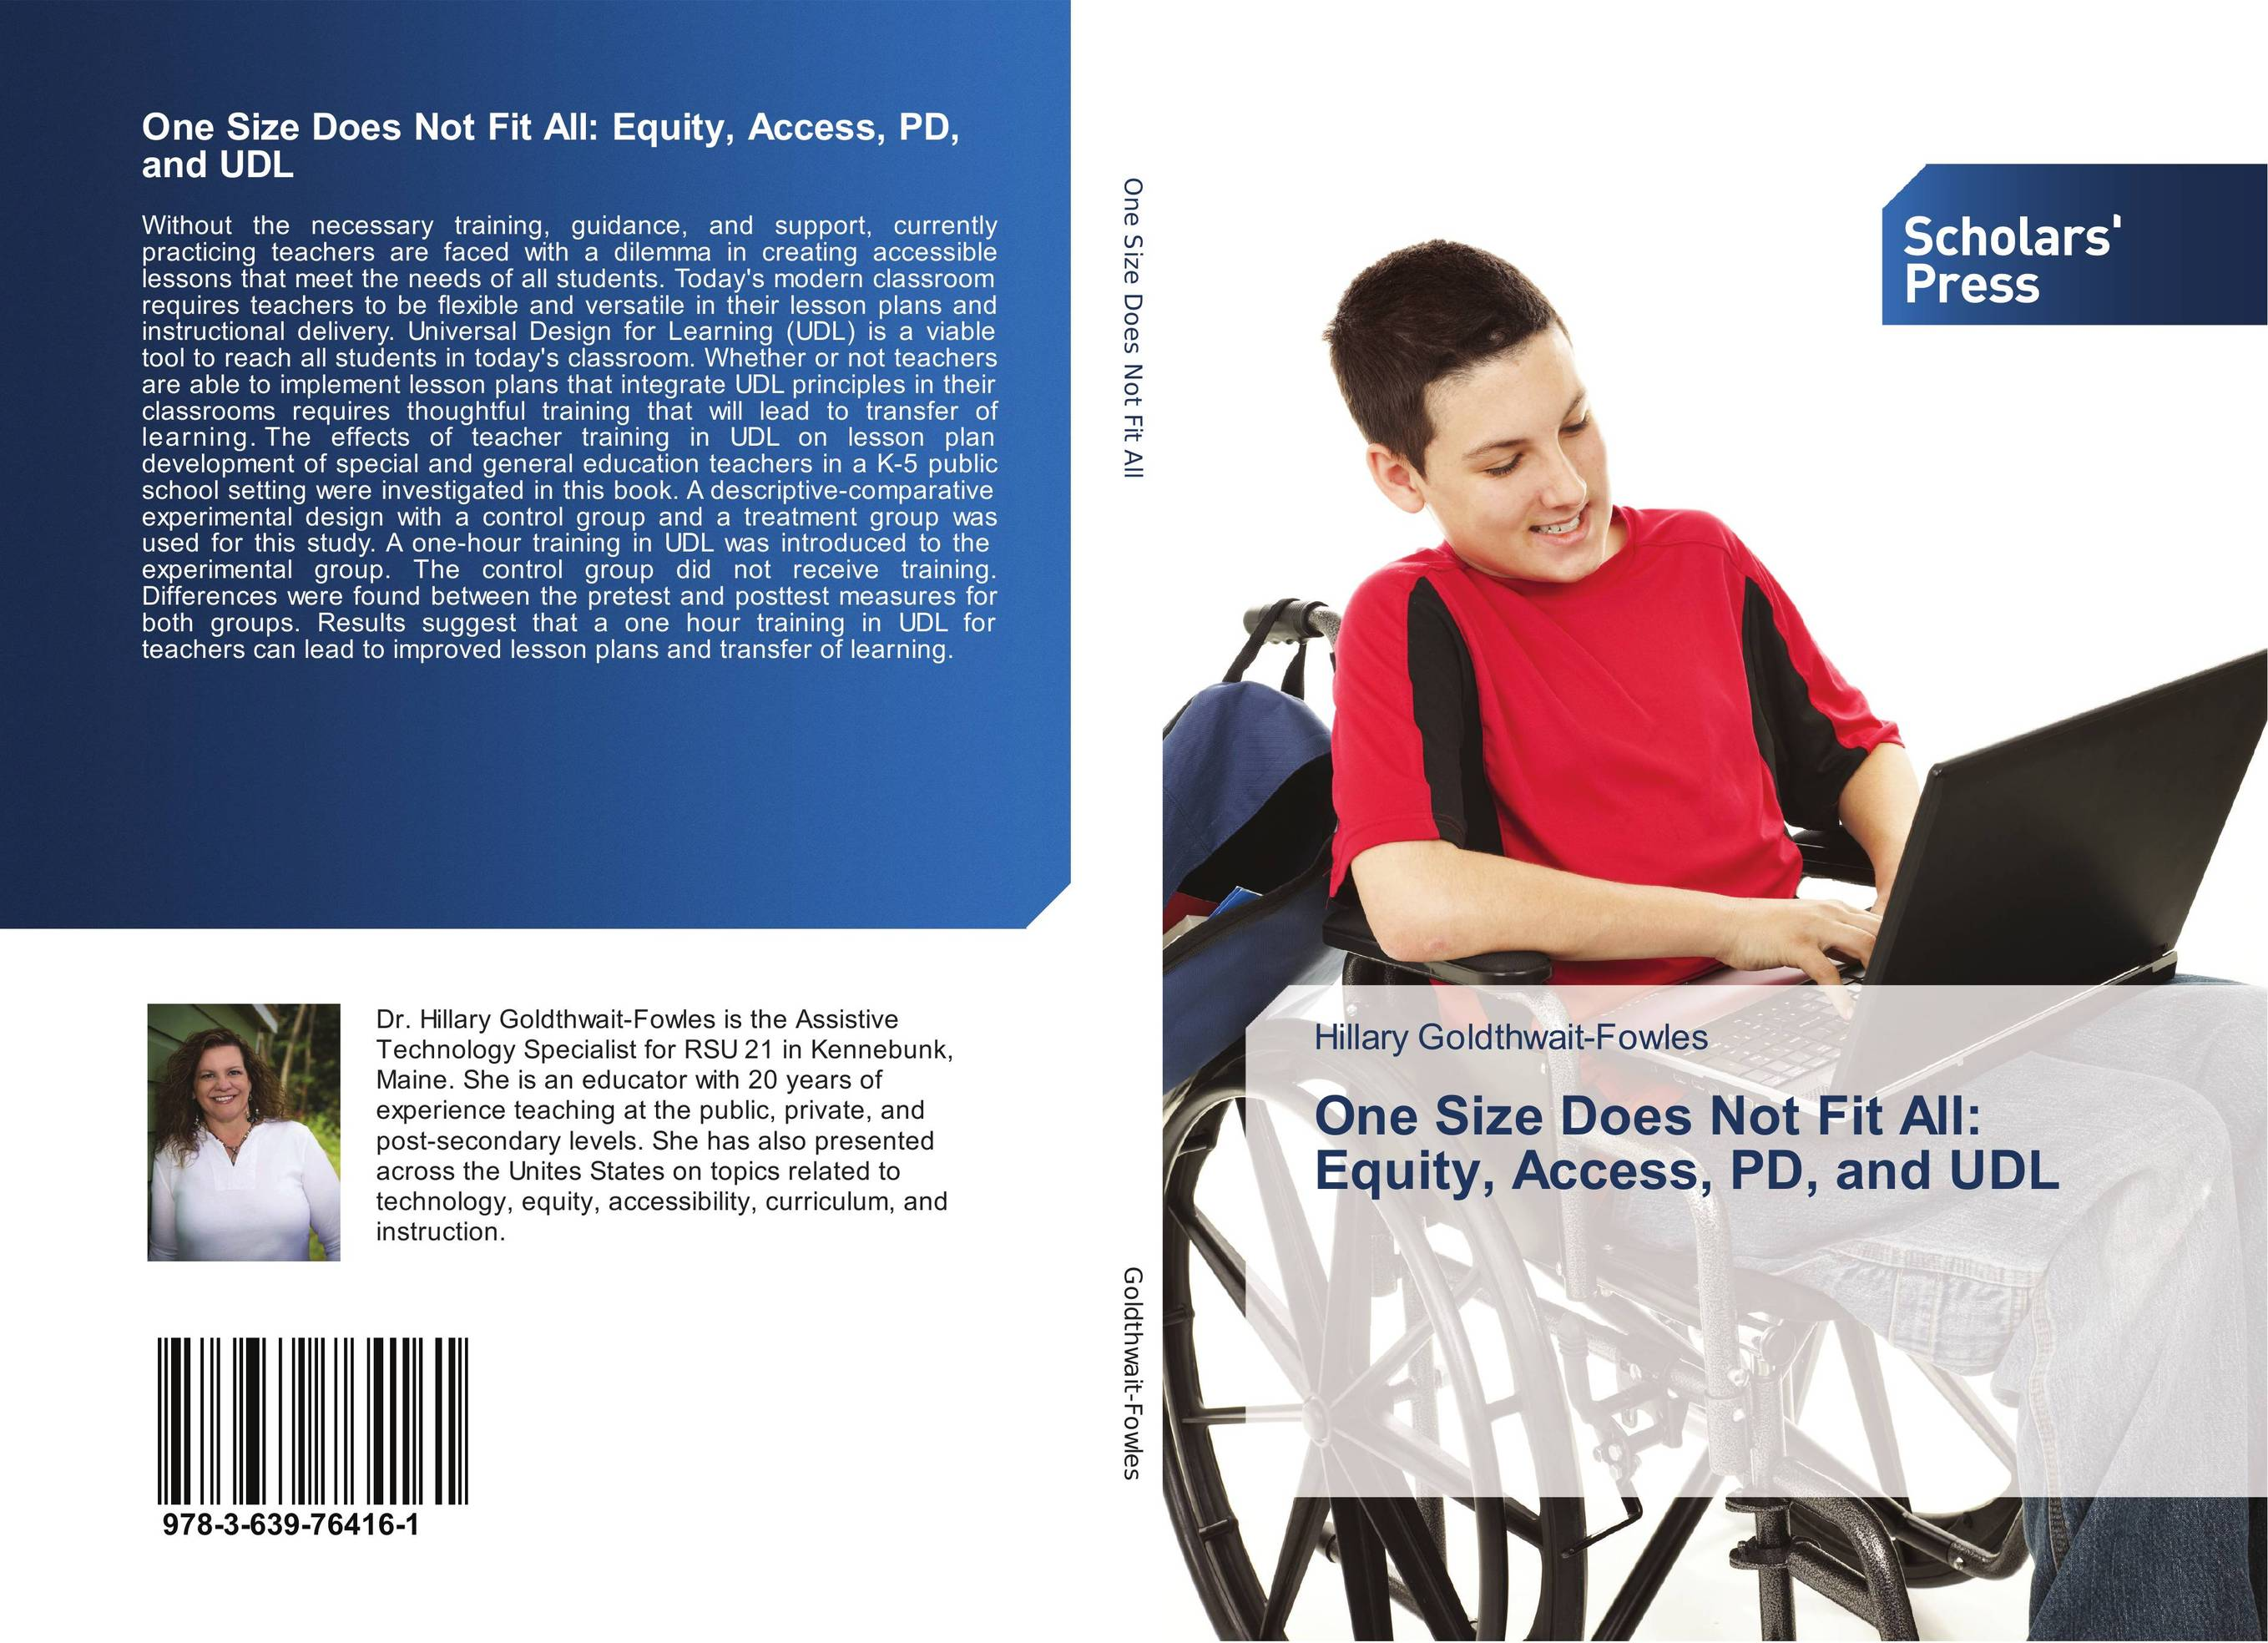 One Size Does Not Fit All: Equity, Access, PD, and UDL drivas g education learning training in a digital society teachers resource book книга для учителя